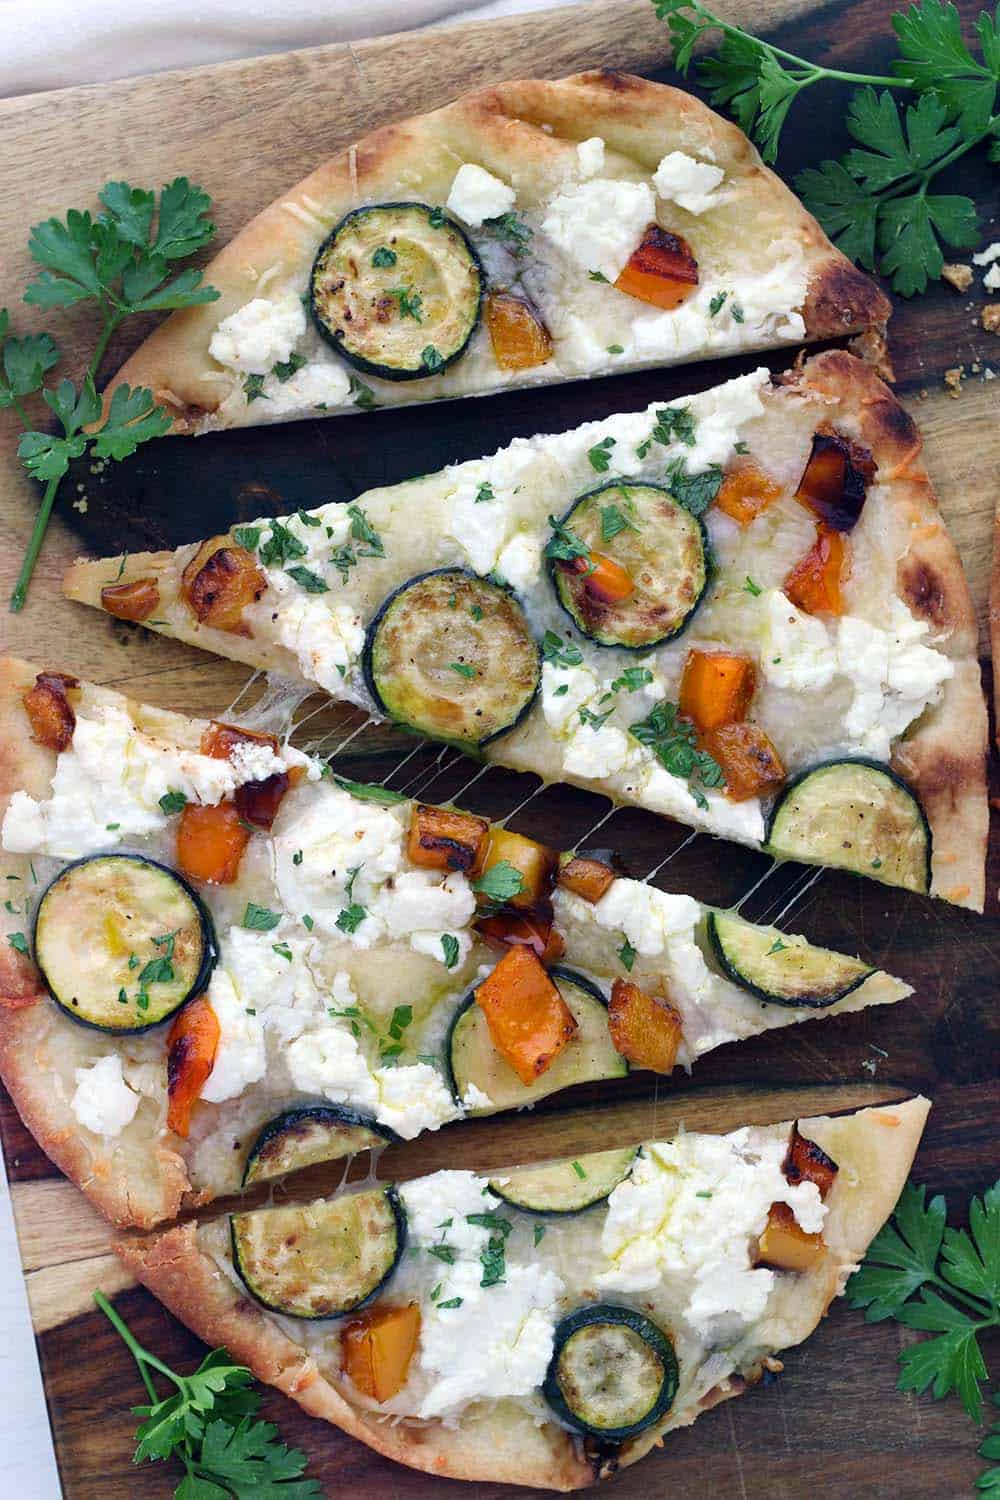 This vegetarian Sautéed Vegetable and Goat Cheese Naan Pizza recipe comes together in only 20 minutes for an easy weeknight dinner! Tip: place the baking rack in the lower half of the oven for a crisp crust.